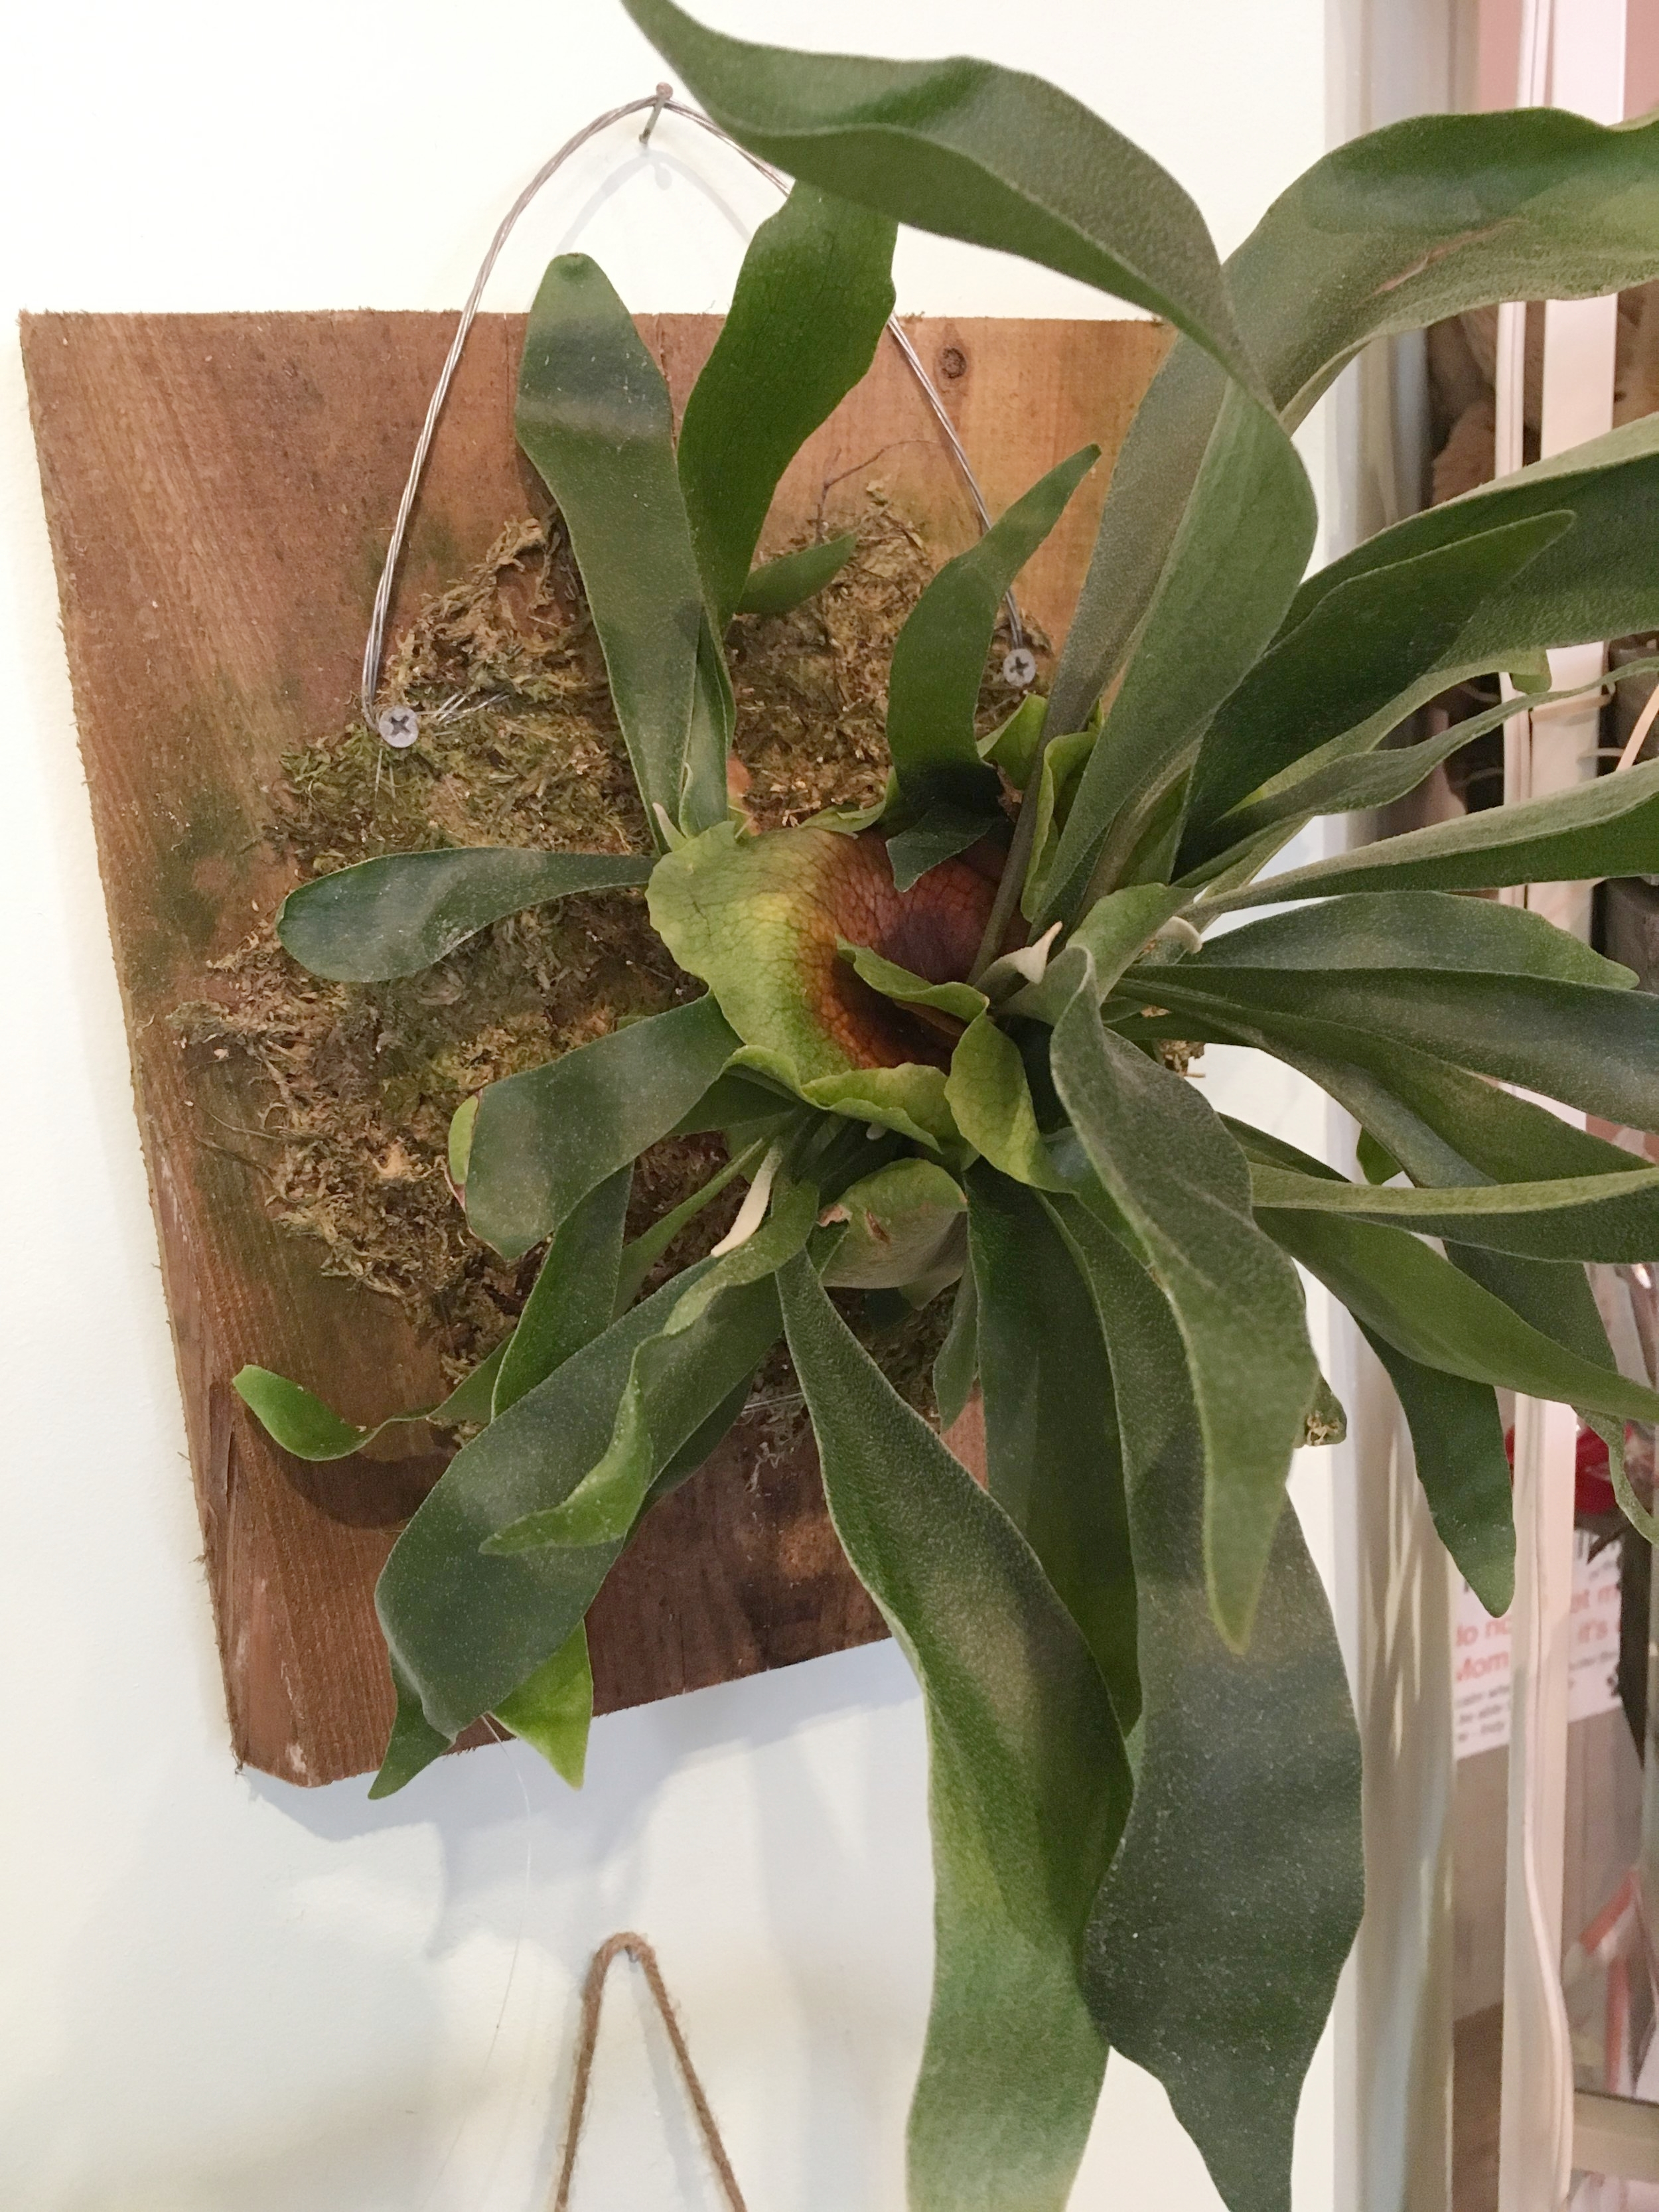 Unusual Plants - We are well stocked this spring! Check out this Staghorn wall fern